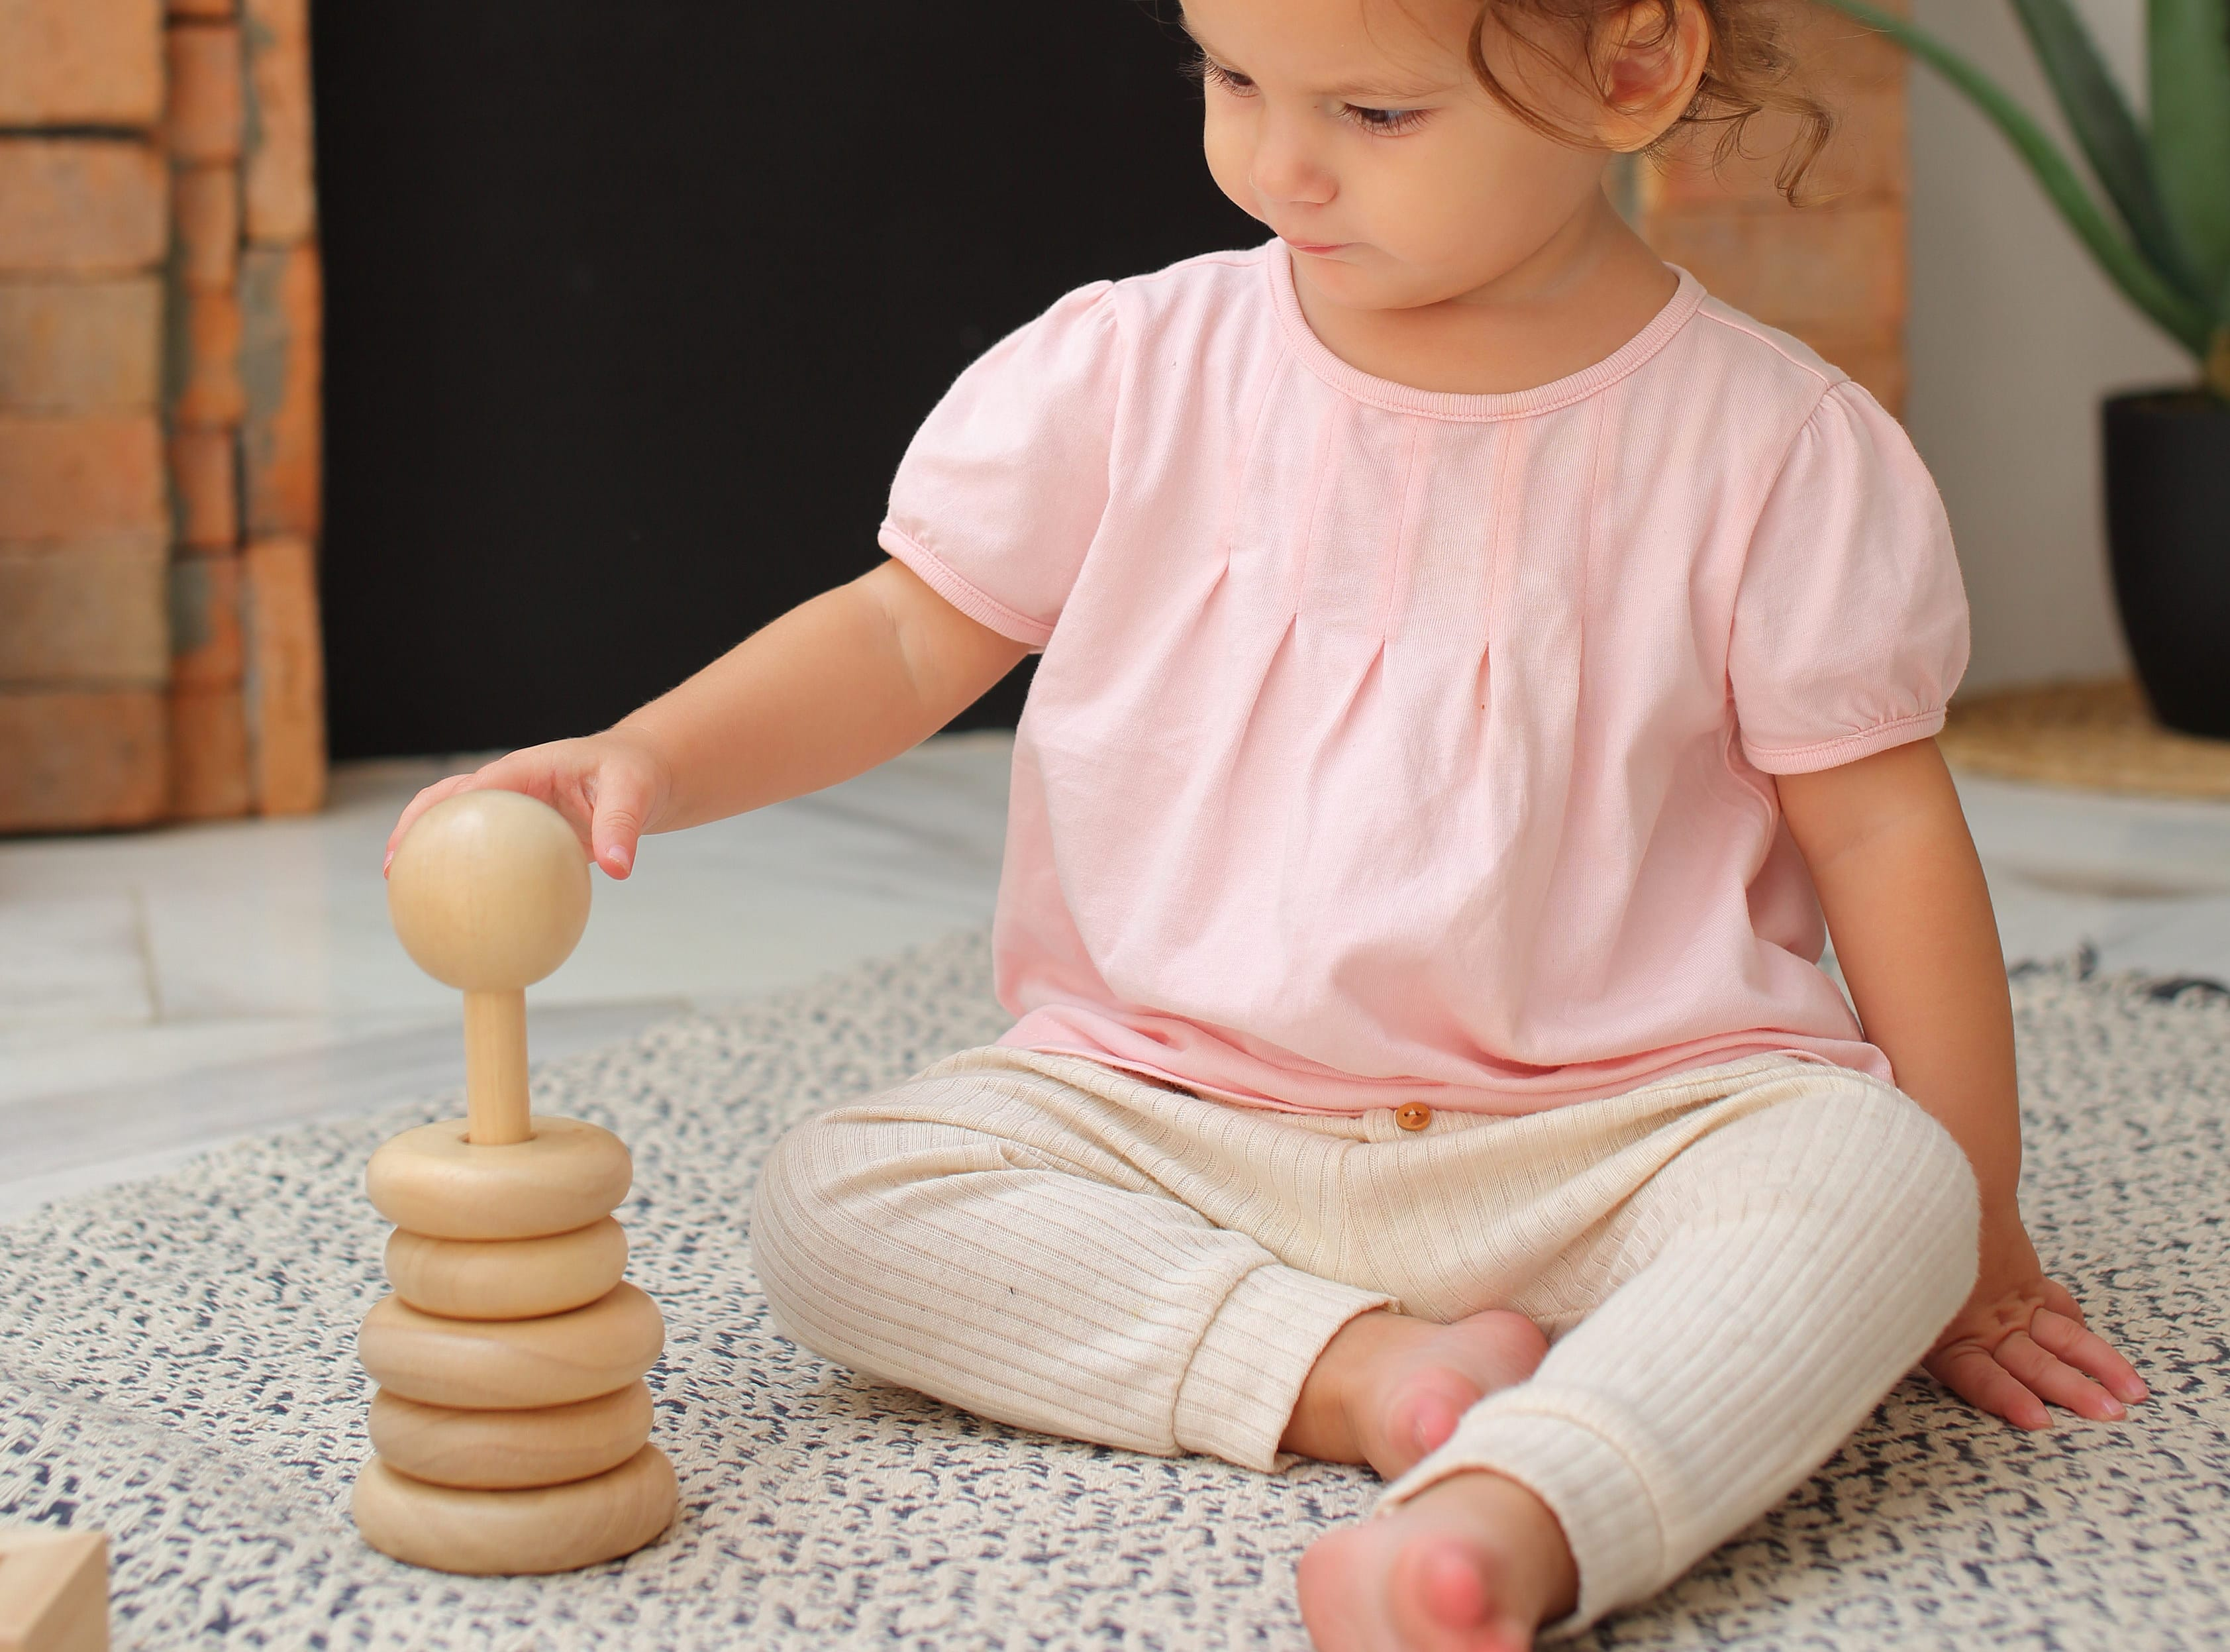 5723_PlanToys_STACKING_RING_-_NATURAL_Learning_and_Education_Coordination_Fine_Motor_Mathematical_Language_and_Communications_Visual_18m_Wooden_toys_Education_toys_Safety_Toys_Non-toxic_2.jpg